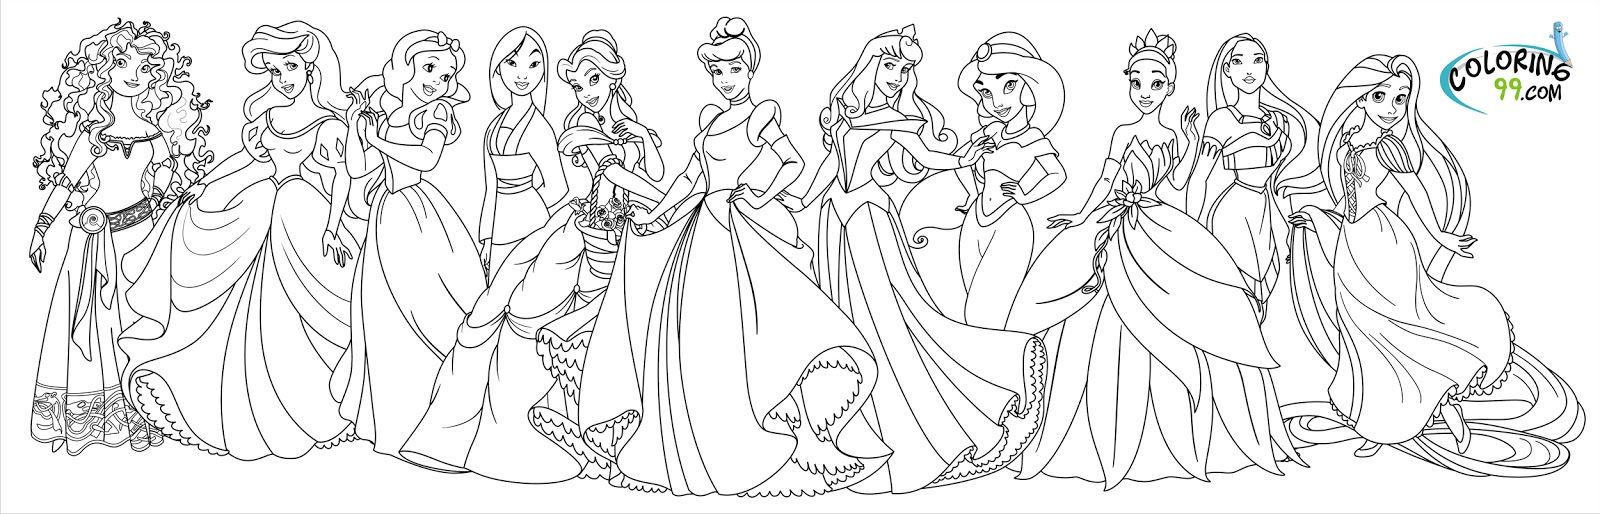 All princess coloring pages - Princess Jasmine Coloring Pages